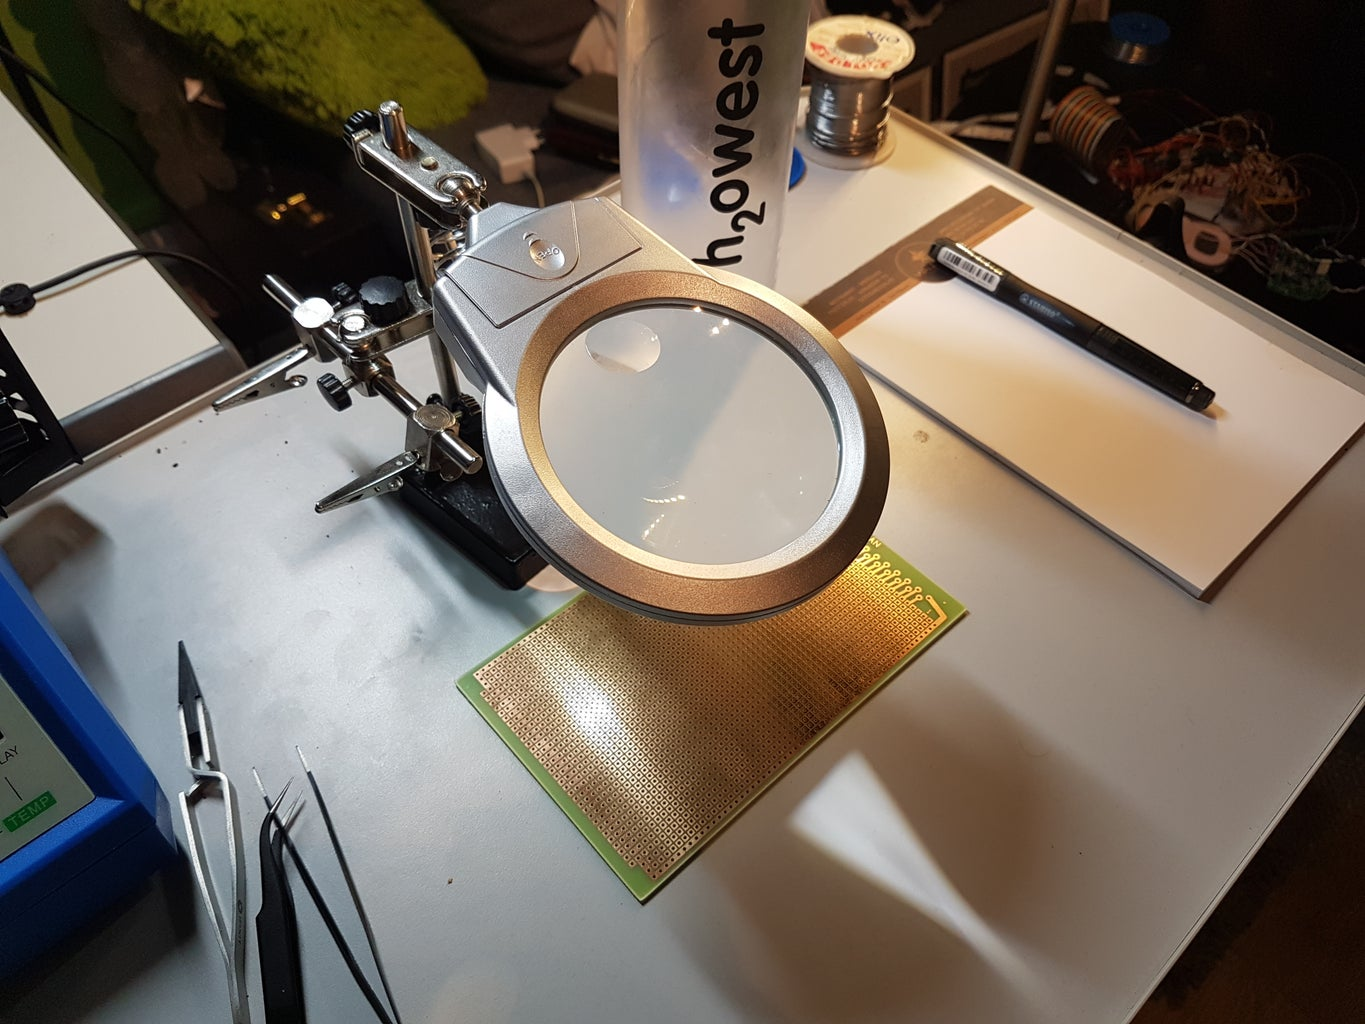 Soldering Components Onto a Pcb